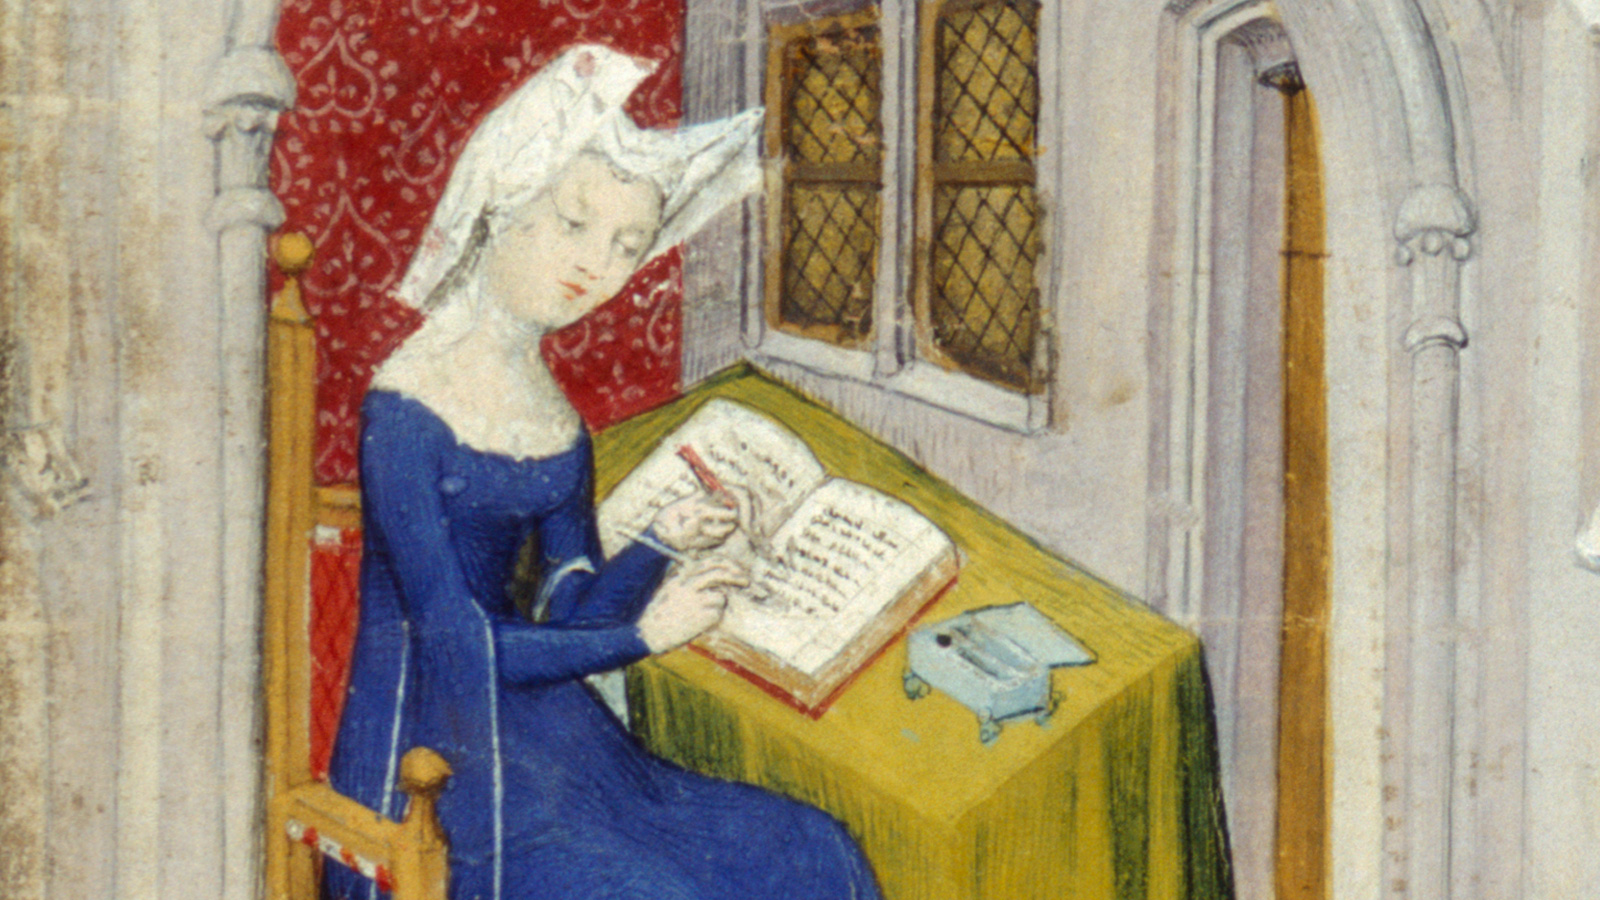 Women's voices in the medieval period - The British Library